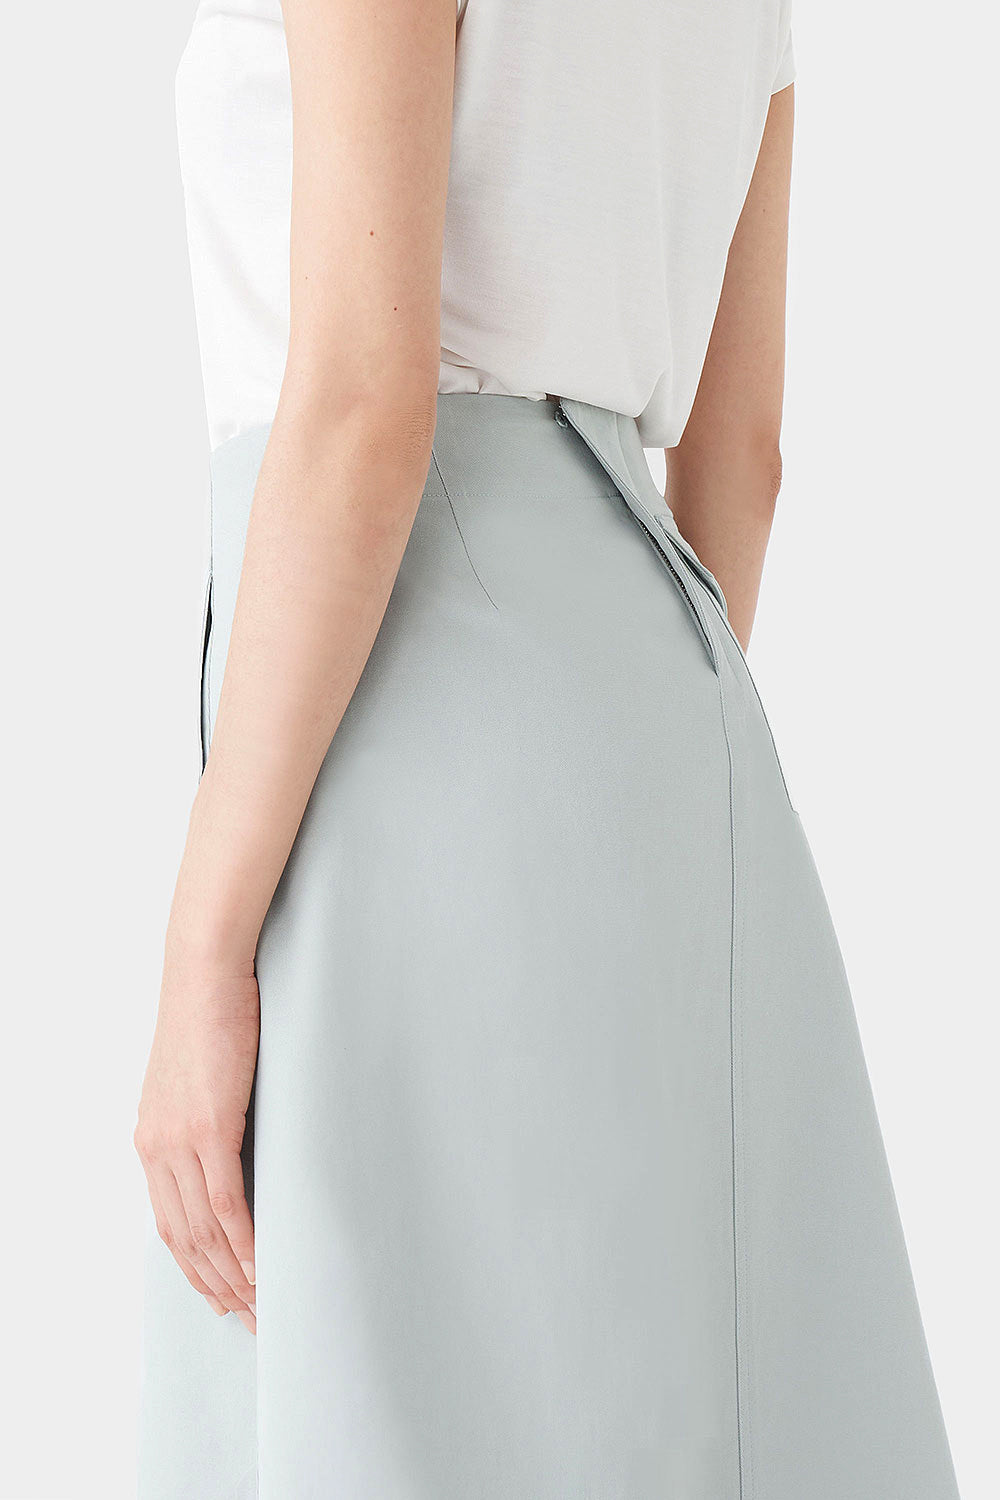 WIND WILKO COTTON STITCH SKIRT